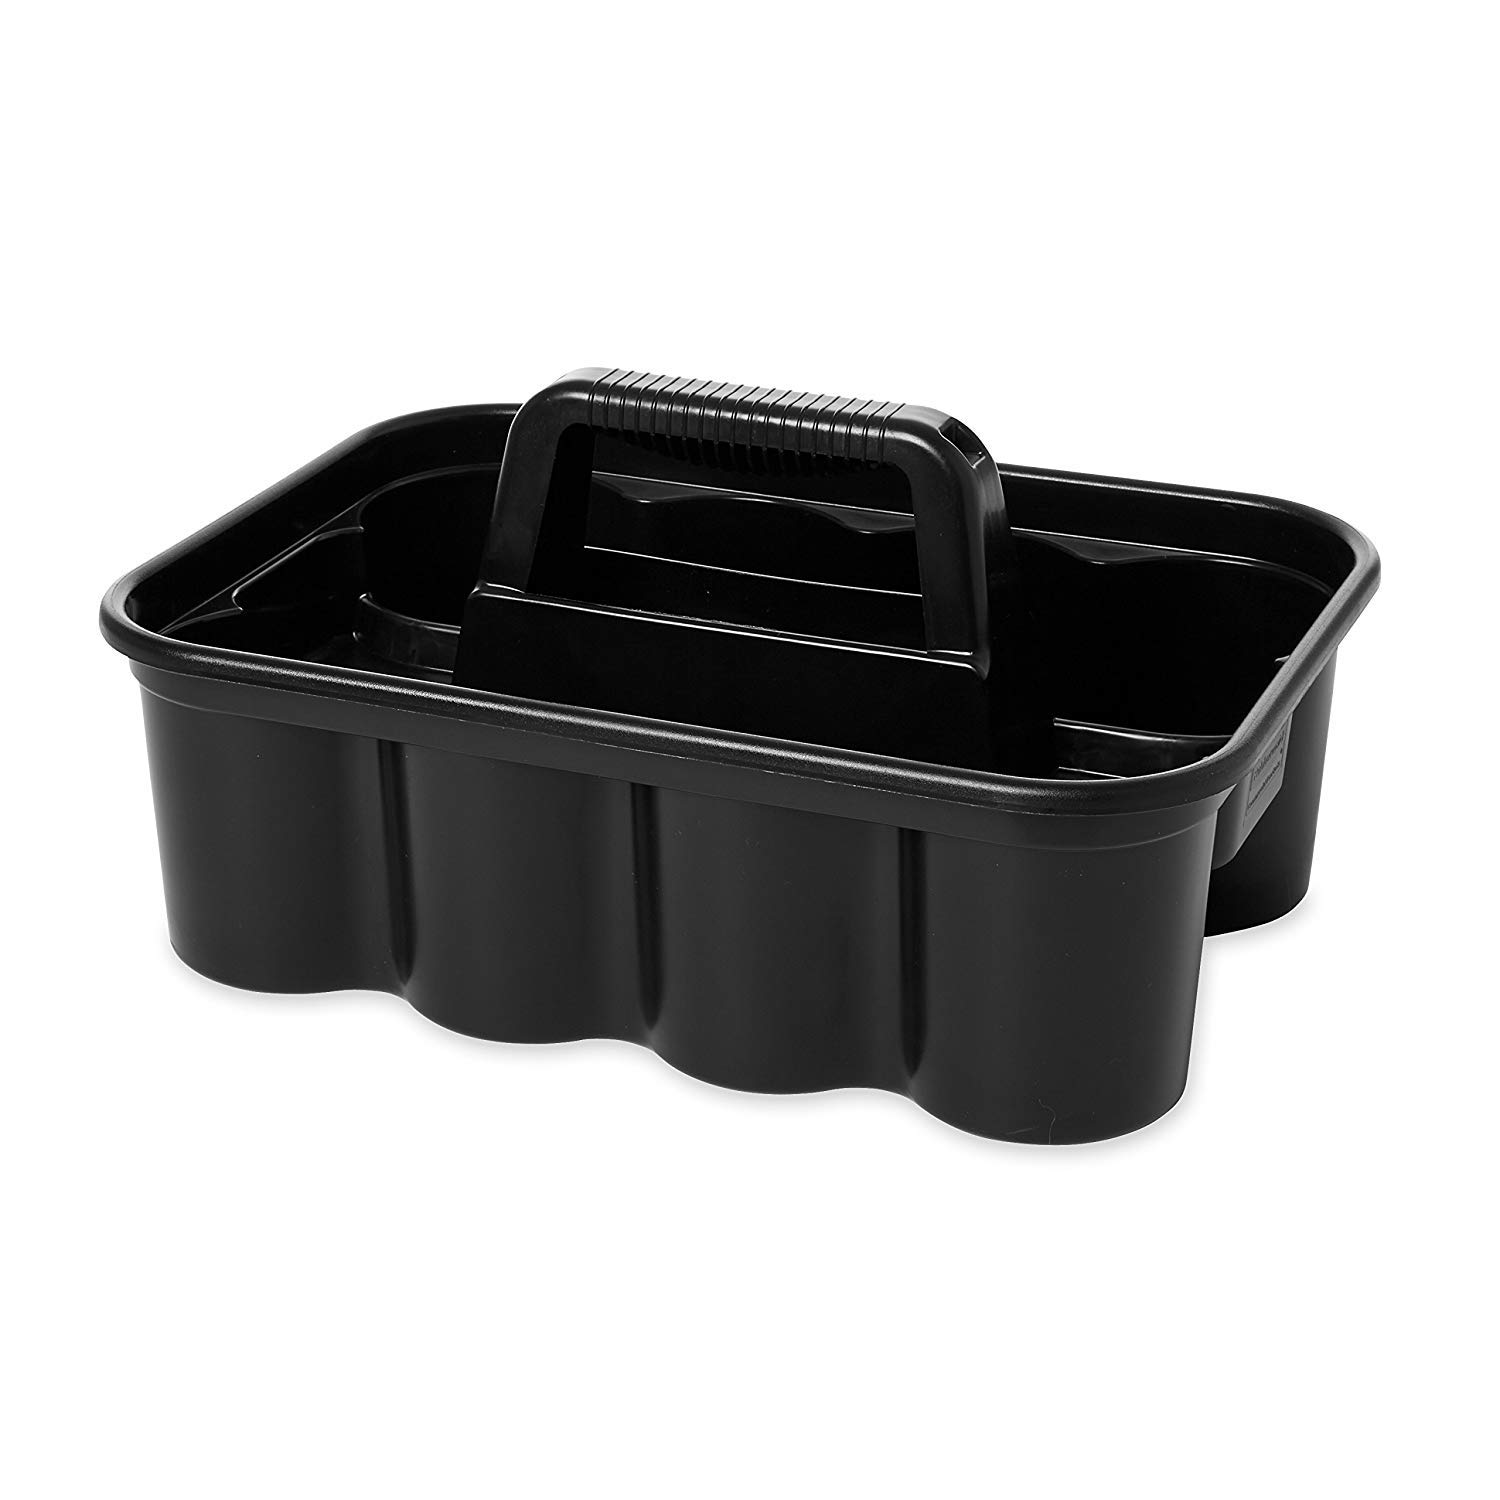 Deluxe Carry Cleaning Caddy, Black (FG315488BLA) by RubbermaidComercialProducts (Image #3)